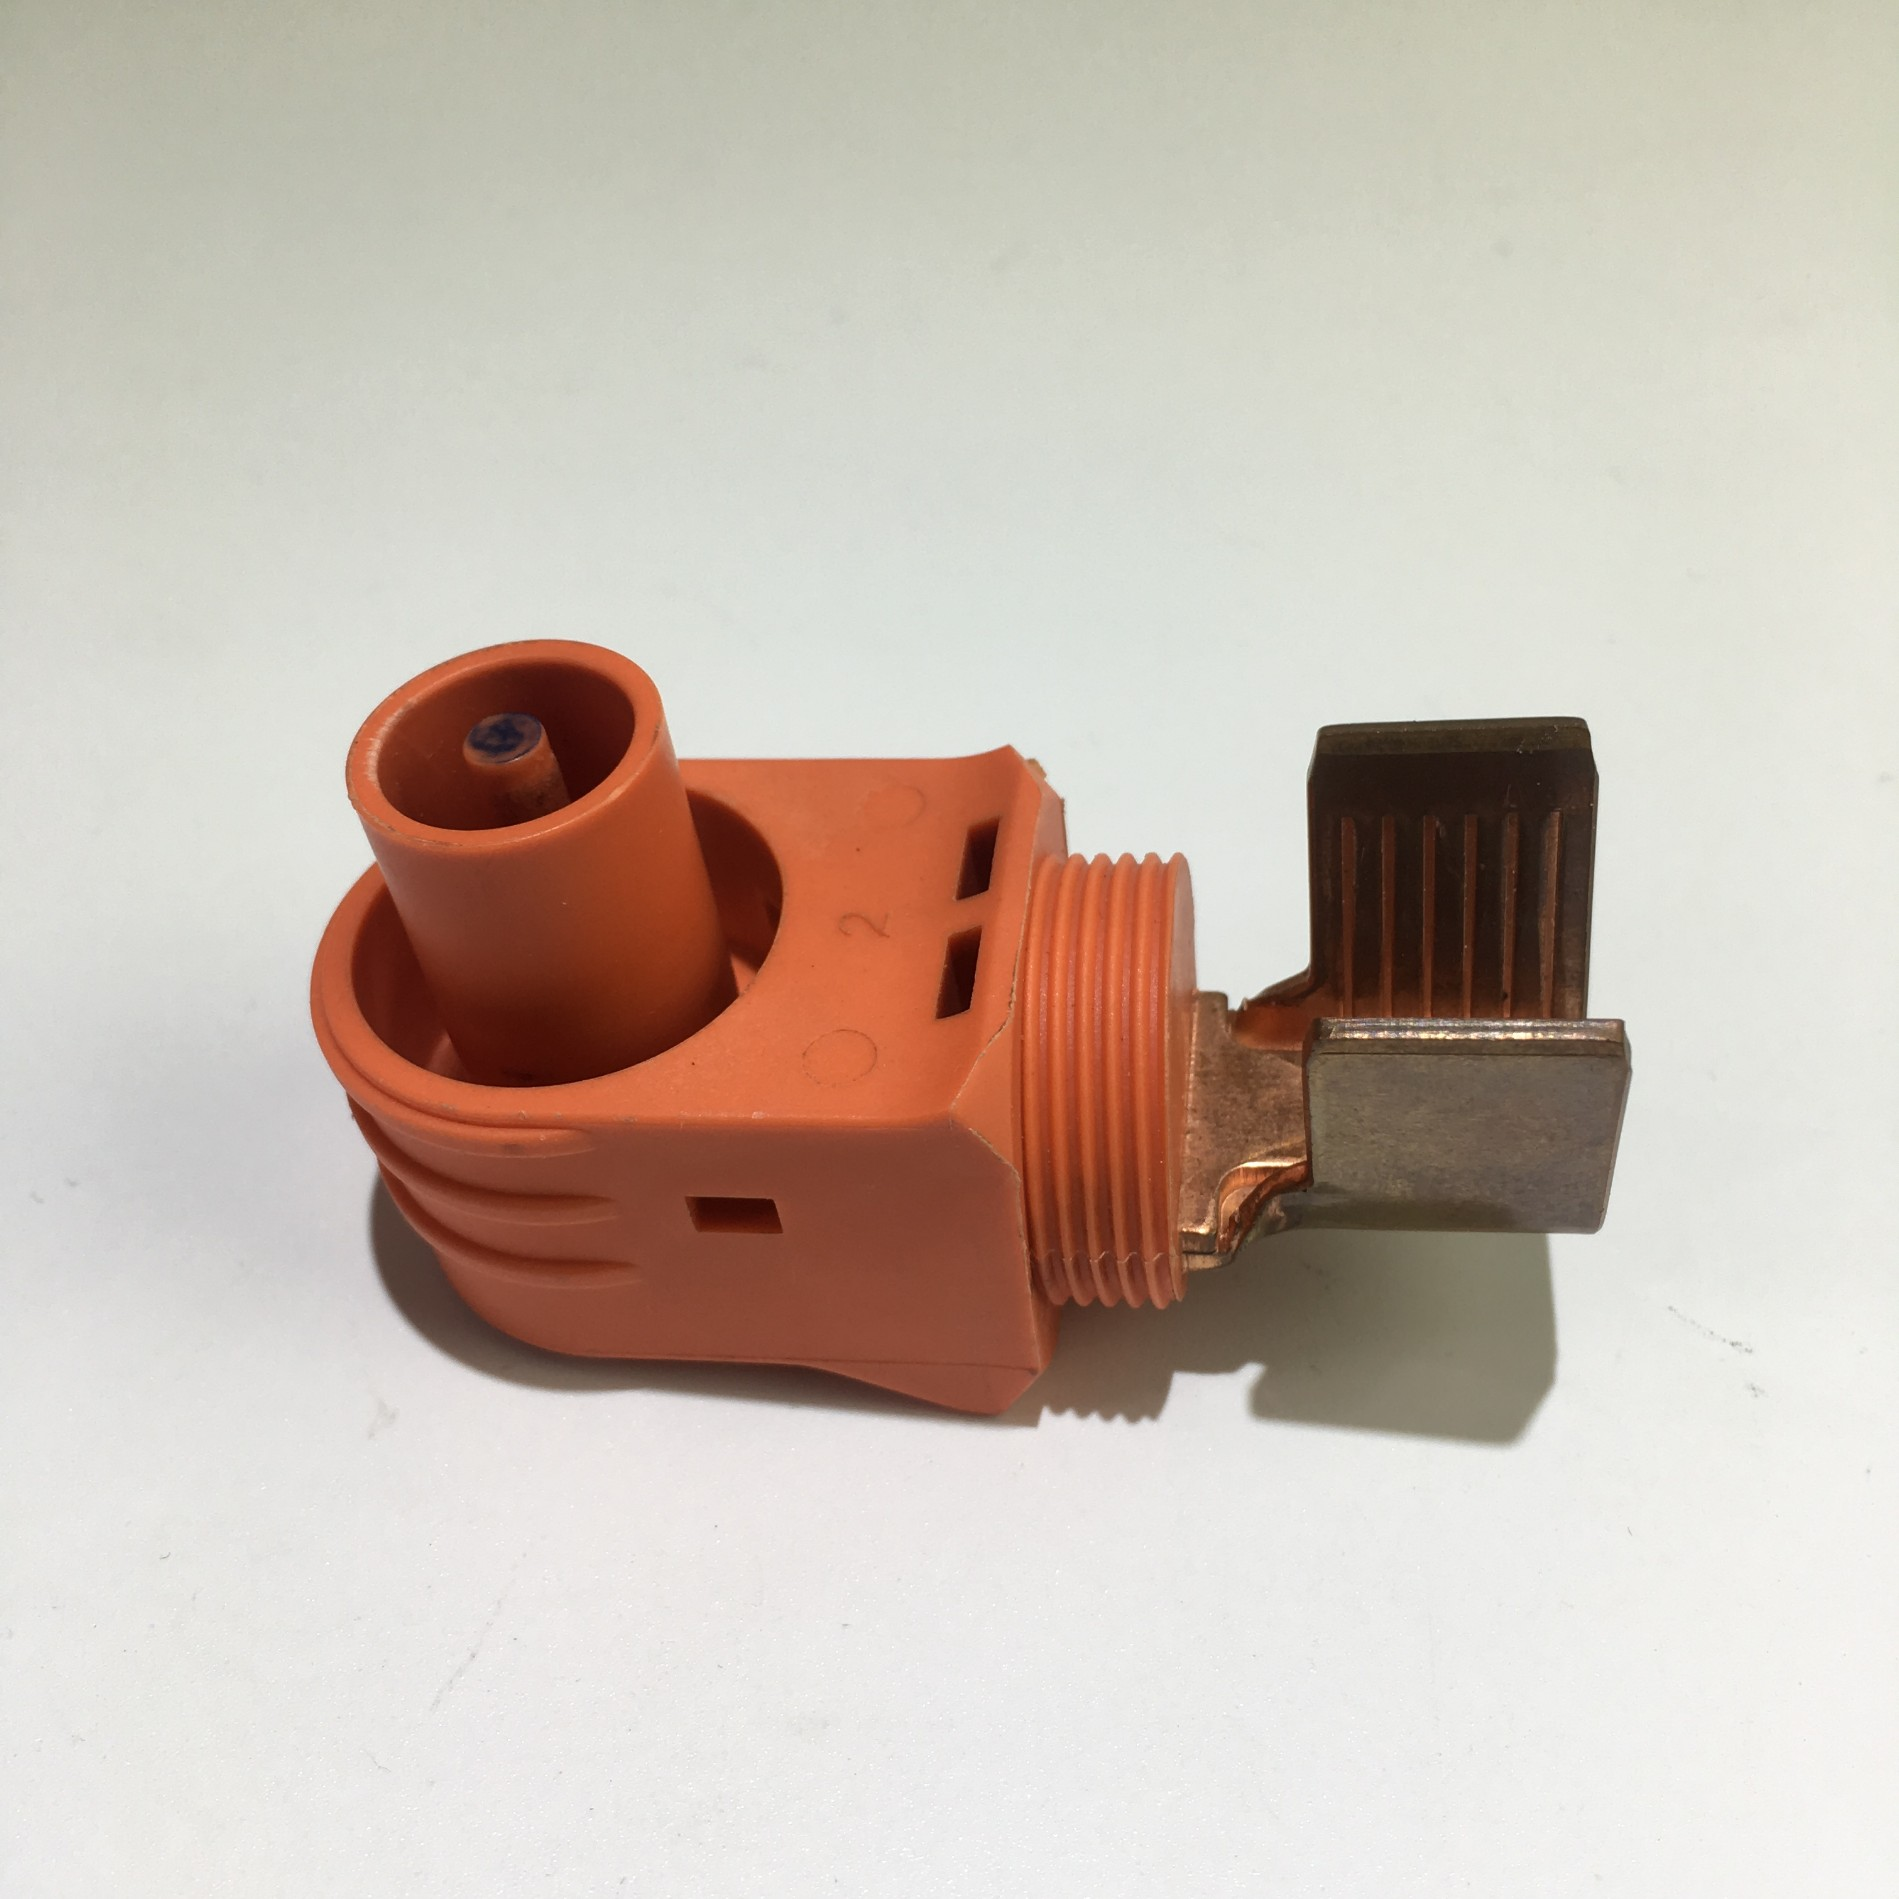 Rubber Plastic Injection Overmolding Manufacturers, Rubber Plastic Injection Overmolding Factory, Supply Rubber Plastic Injection Overmolding